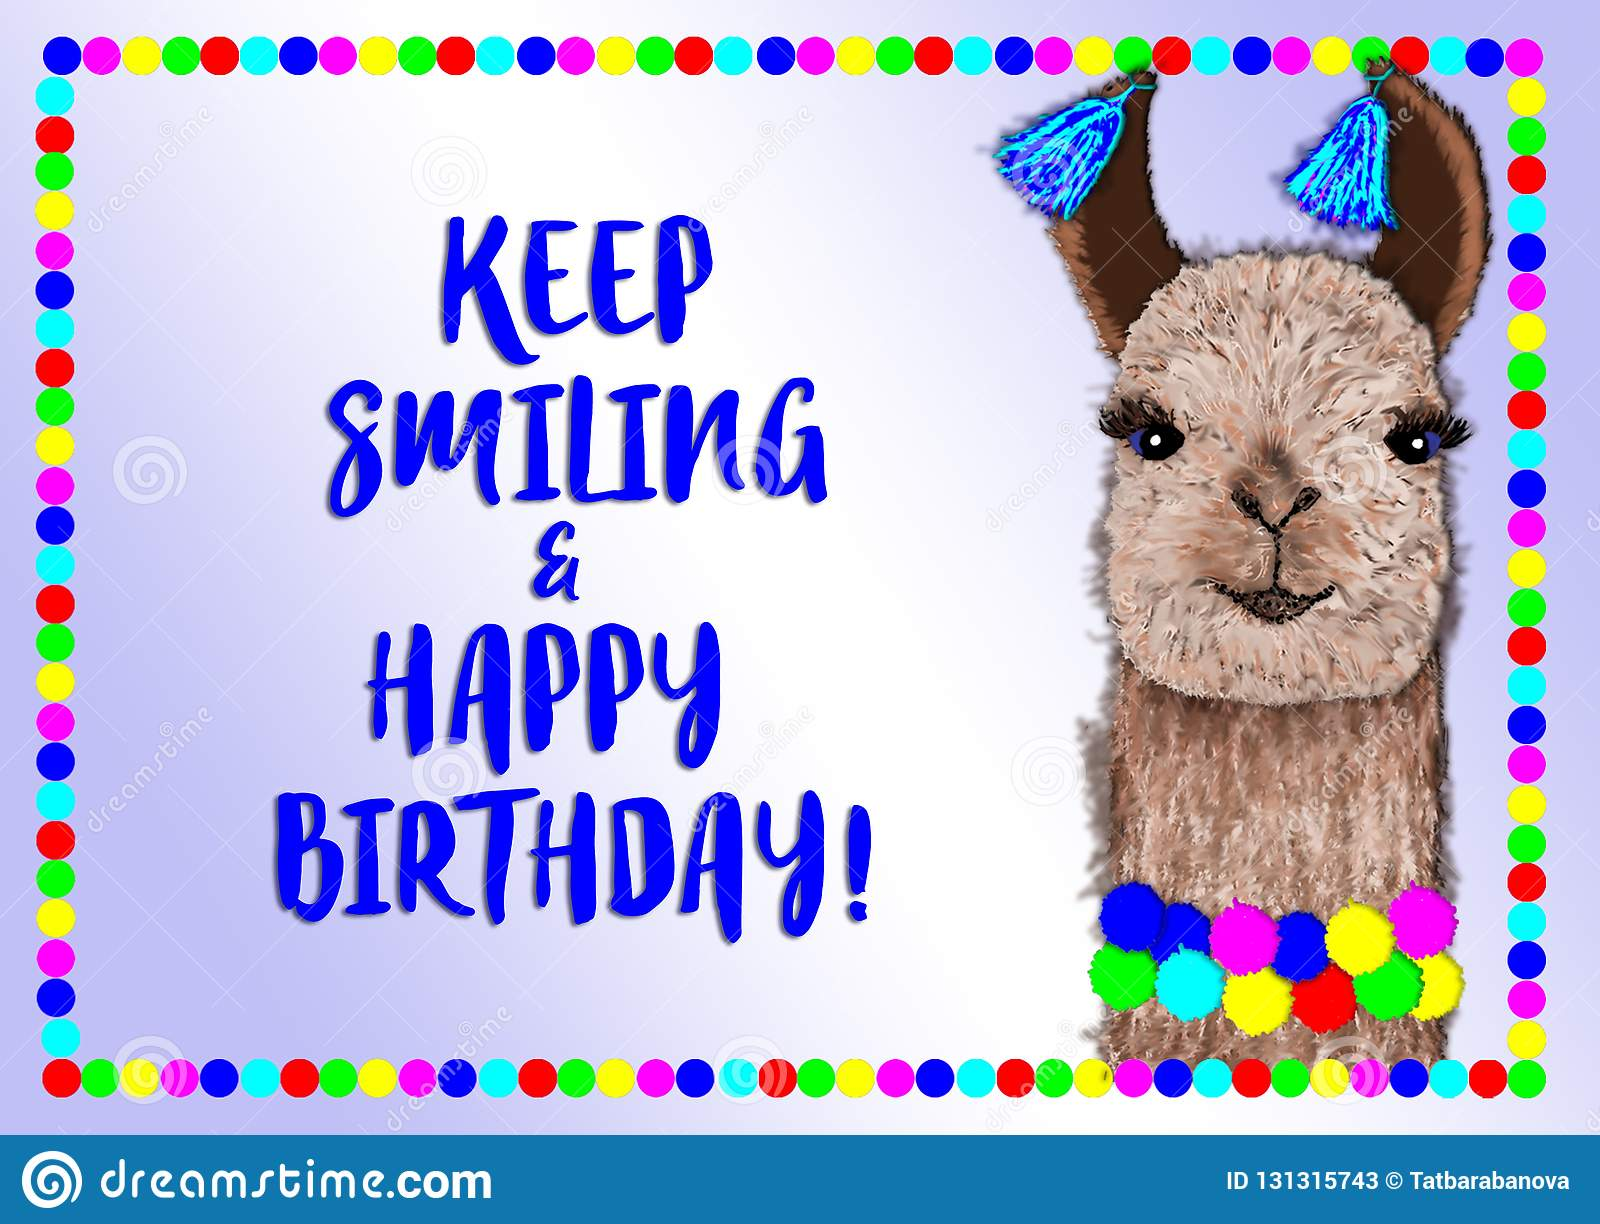 Perfect For Wishing Your Loved Ones A Happy Birthday Save Yourself Delivery Time And Shipping Costs By Purchasing This Digital Card